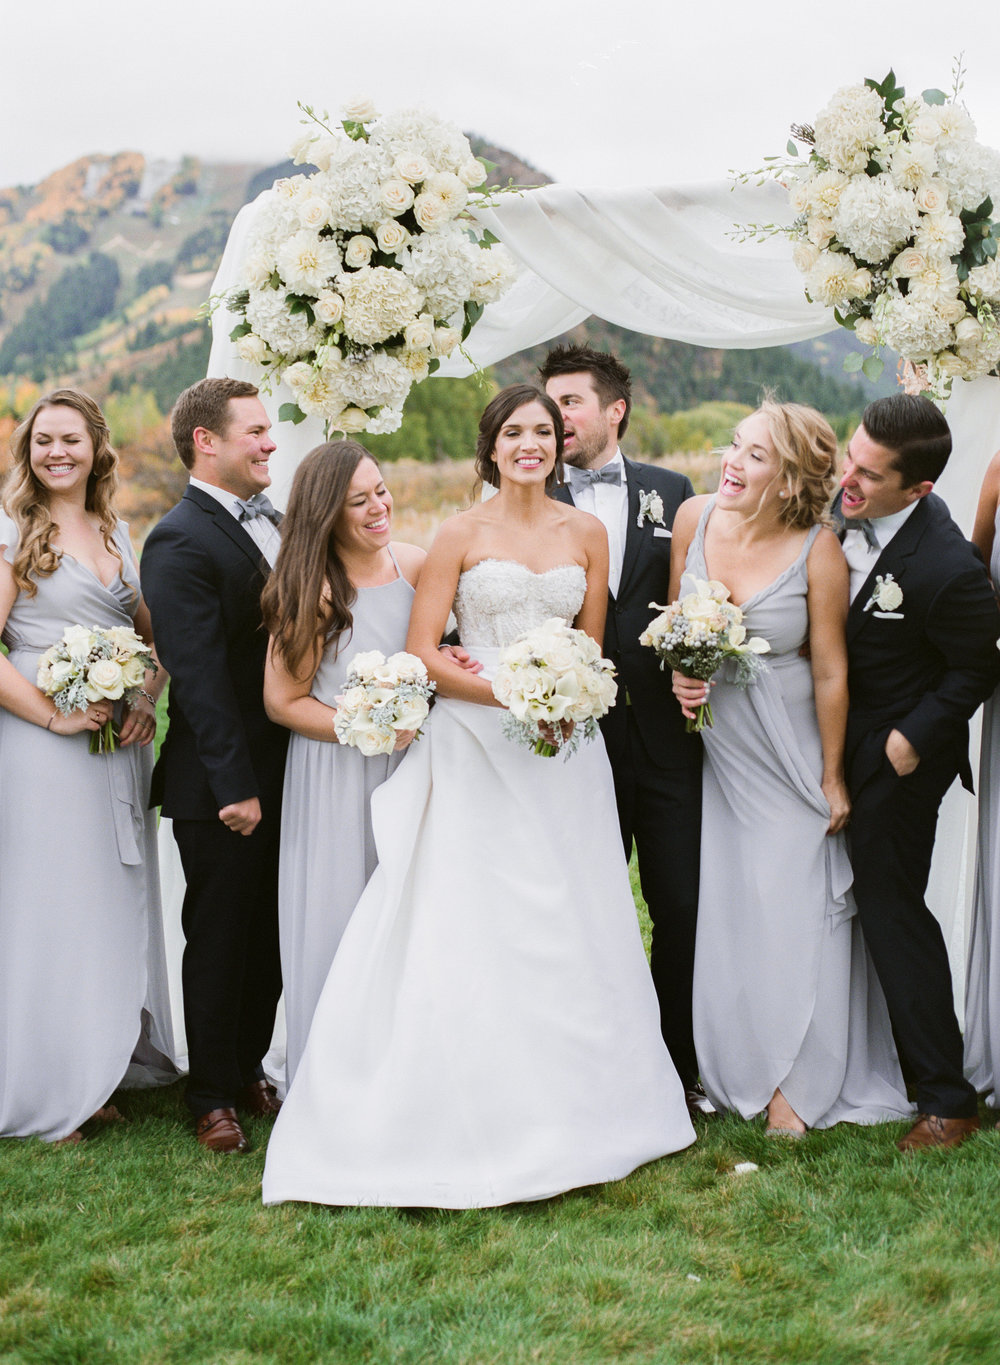 colby michele-Bridal Party-0150.jpg